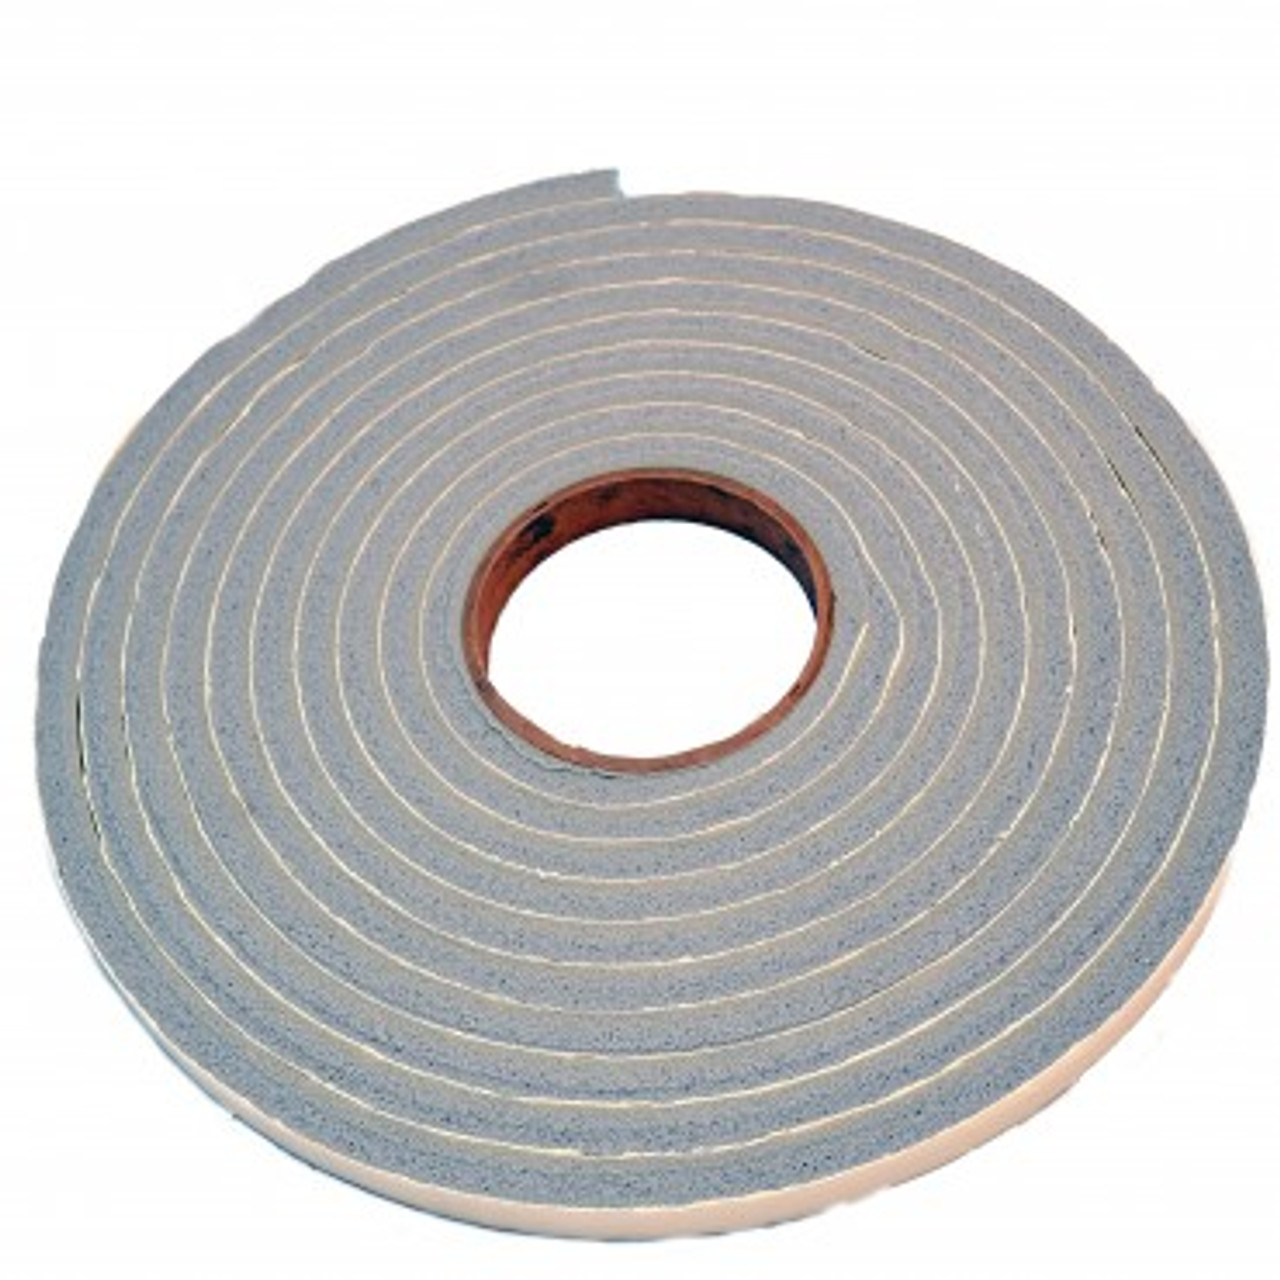 This adhesive weather strip is applied to the sides of a panel pet door for a sliding glass door to seal the pet door to the sliding door and the wall